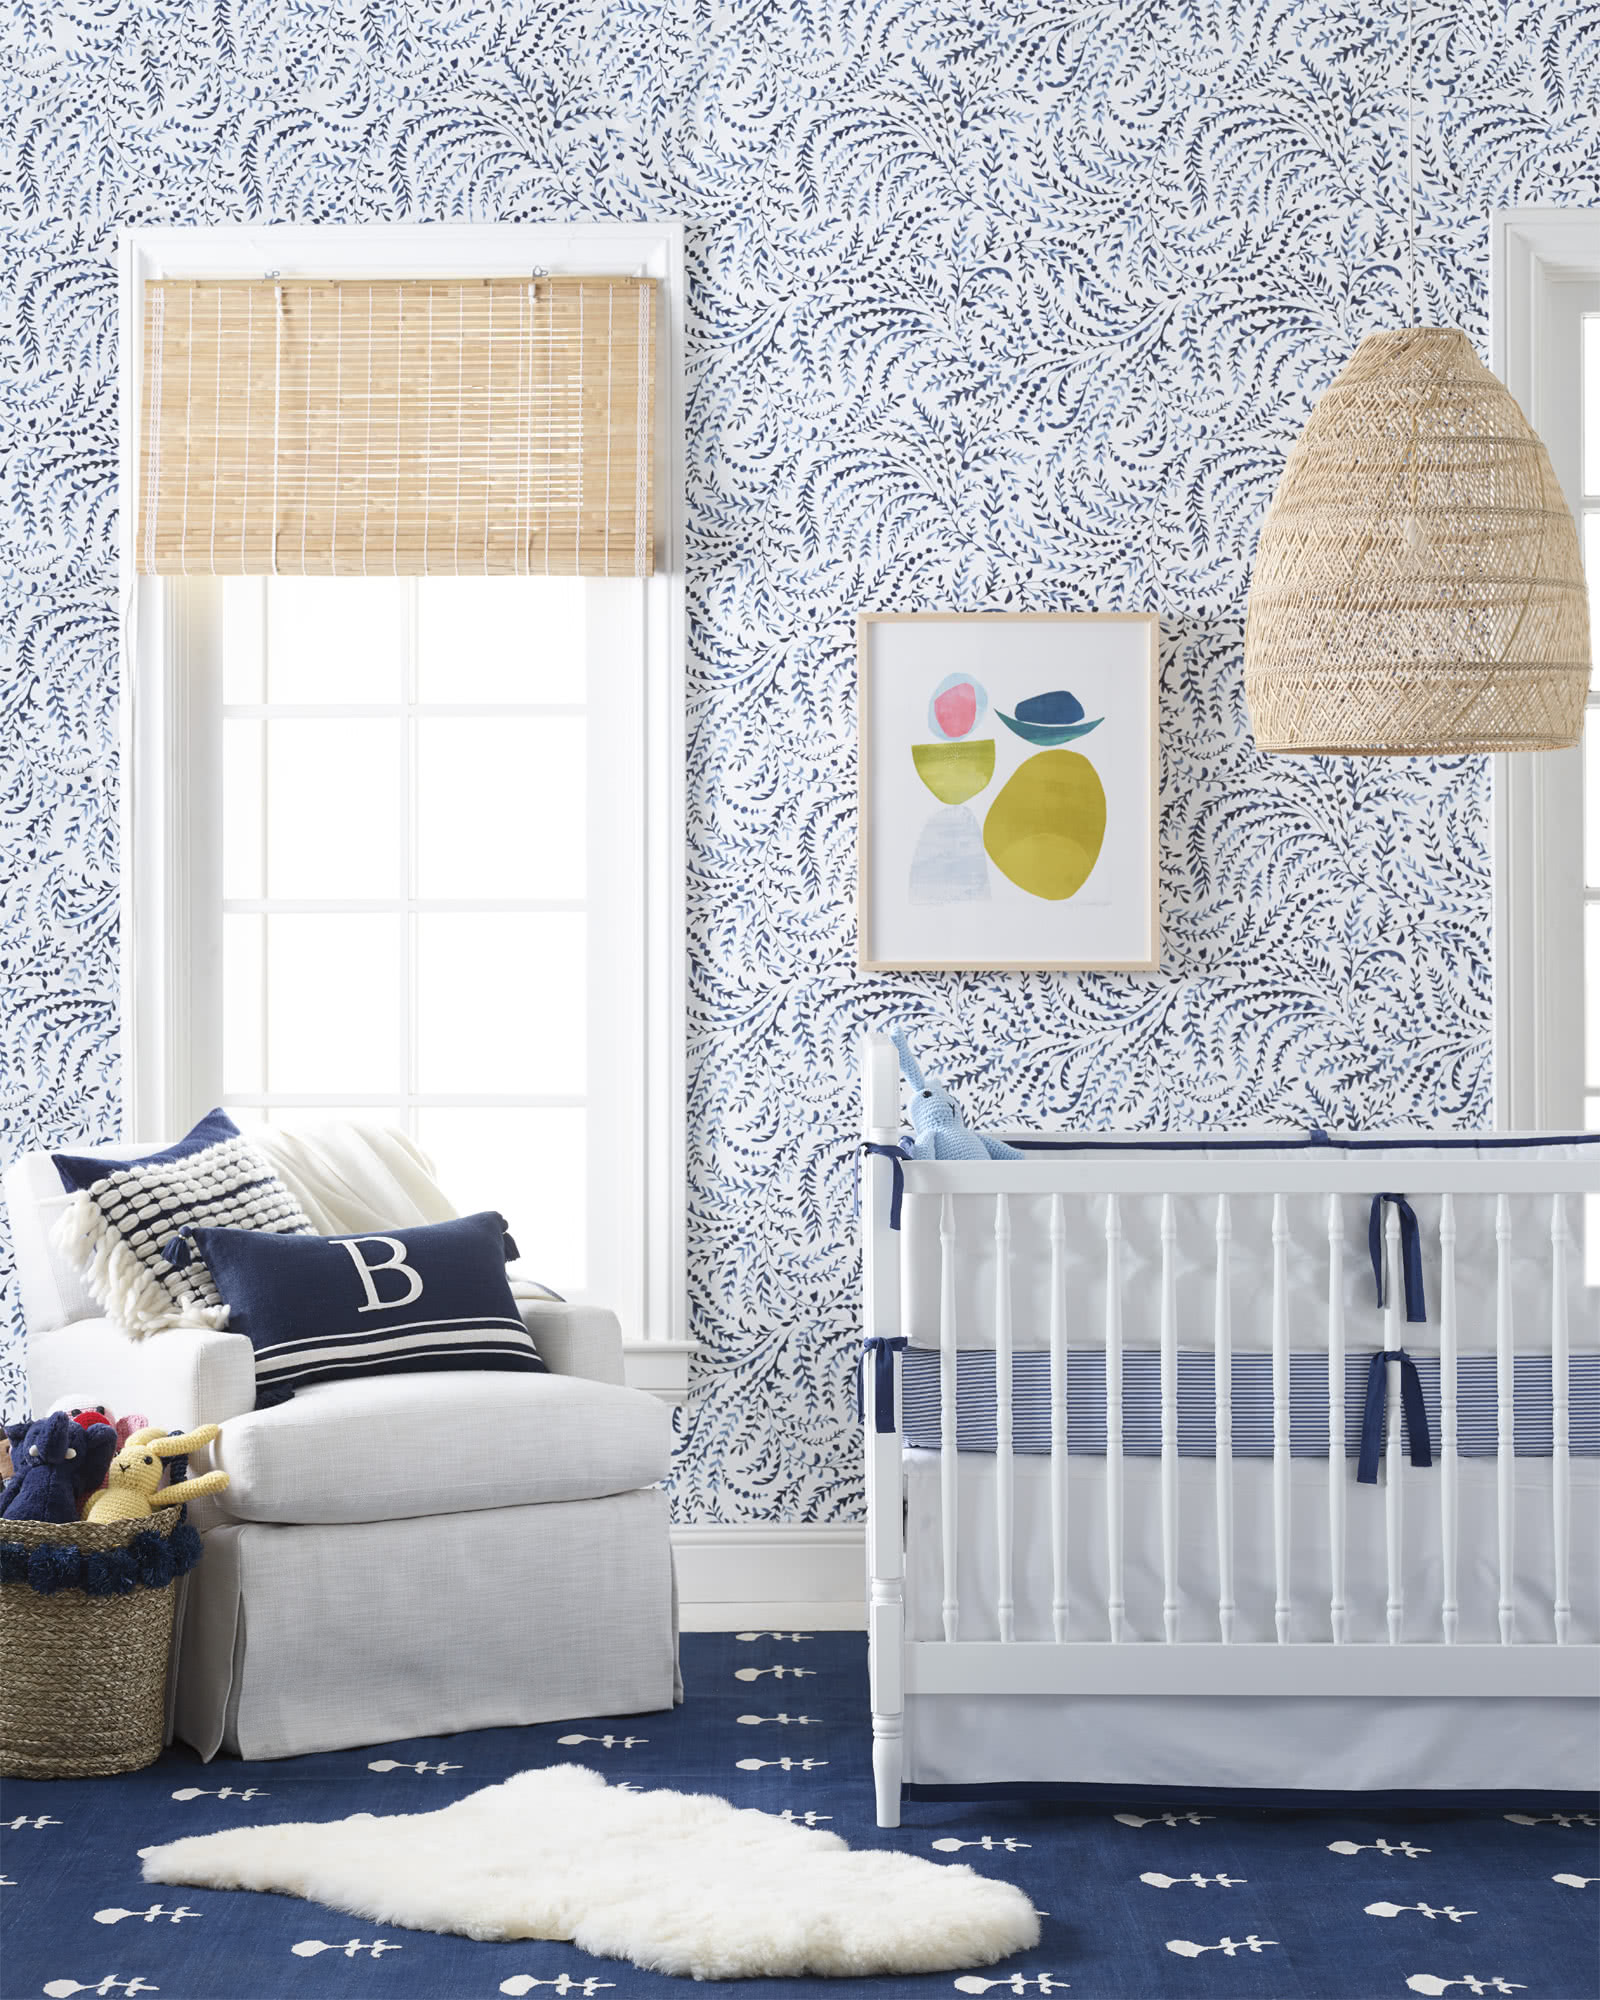 Nursery Basics Crib Bumper, Navy